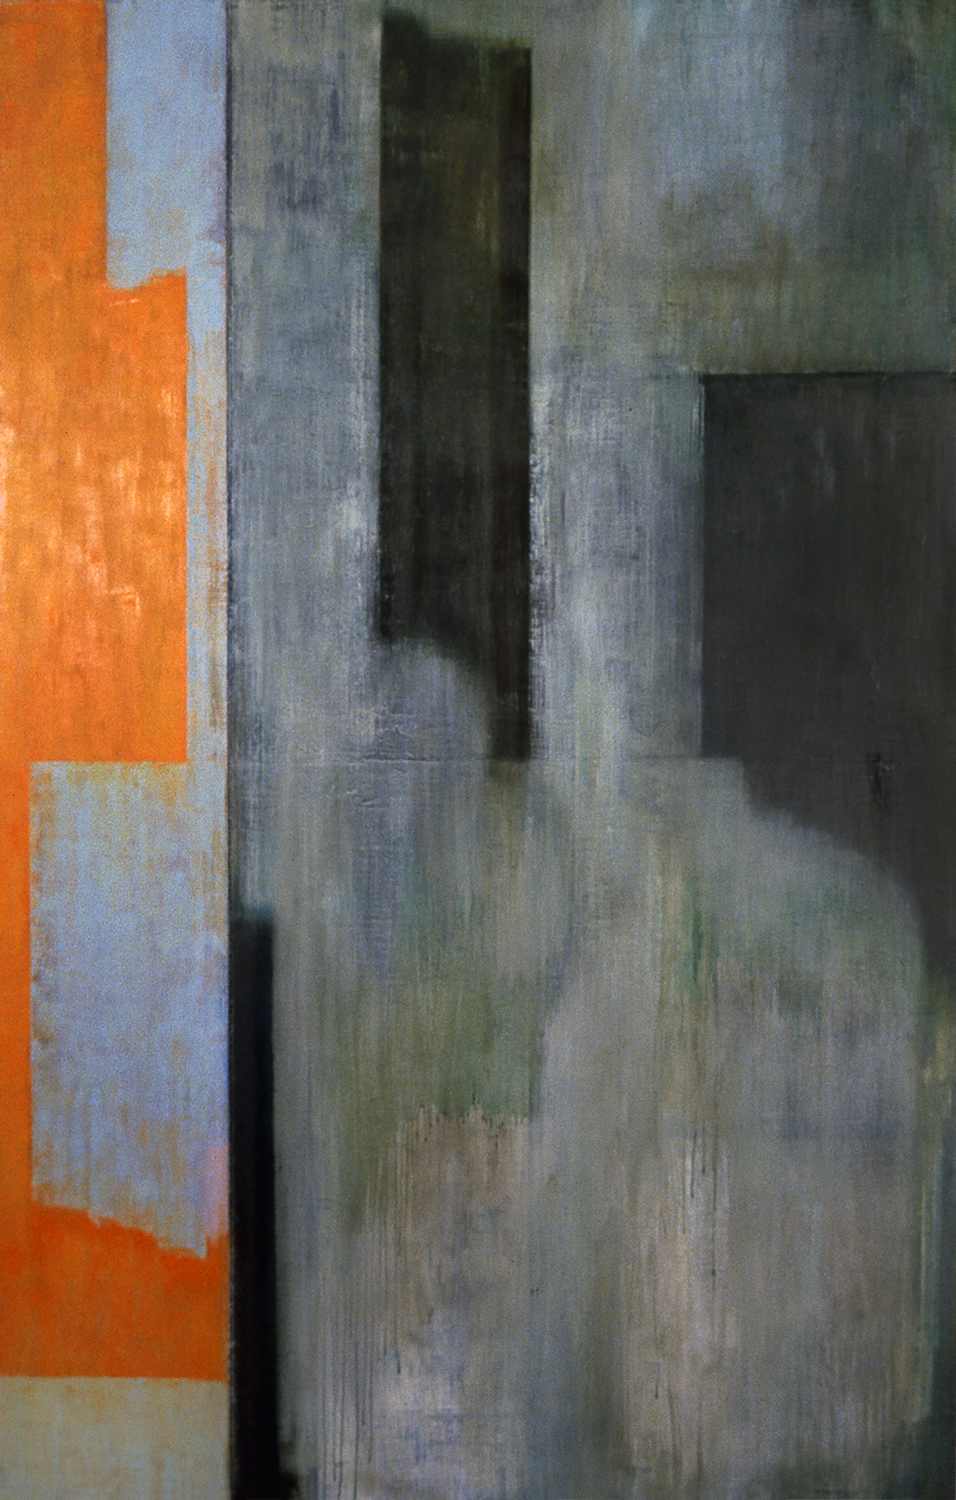 Shield, 1997, Oil, acrylic on canvas over panels, 72 x 48 inches.